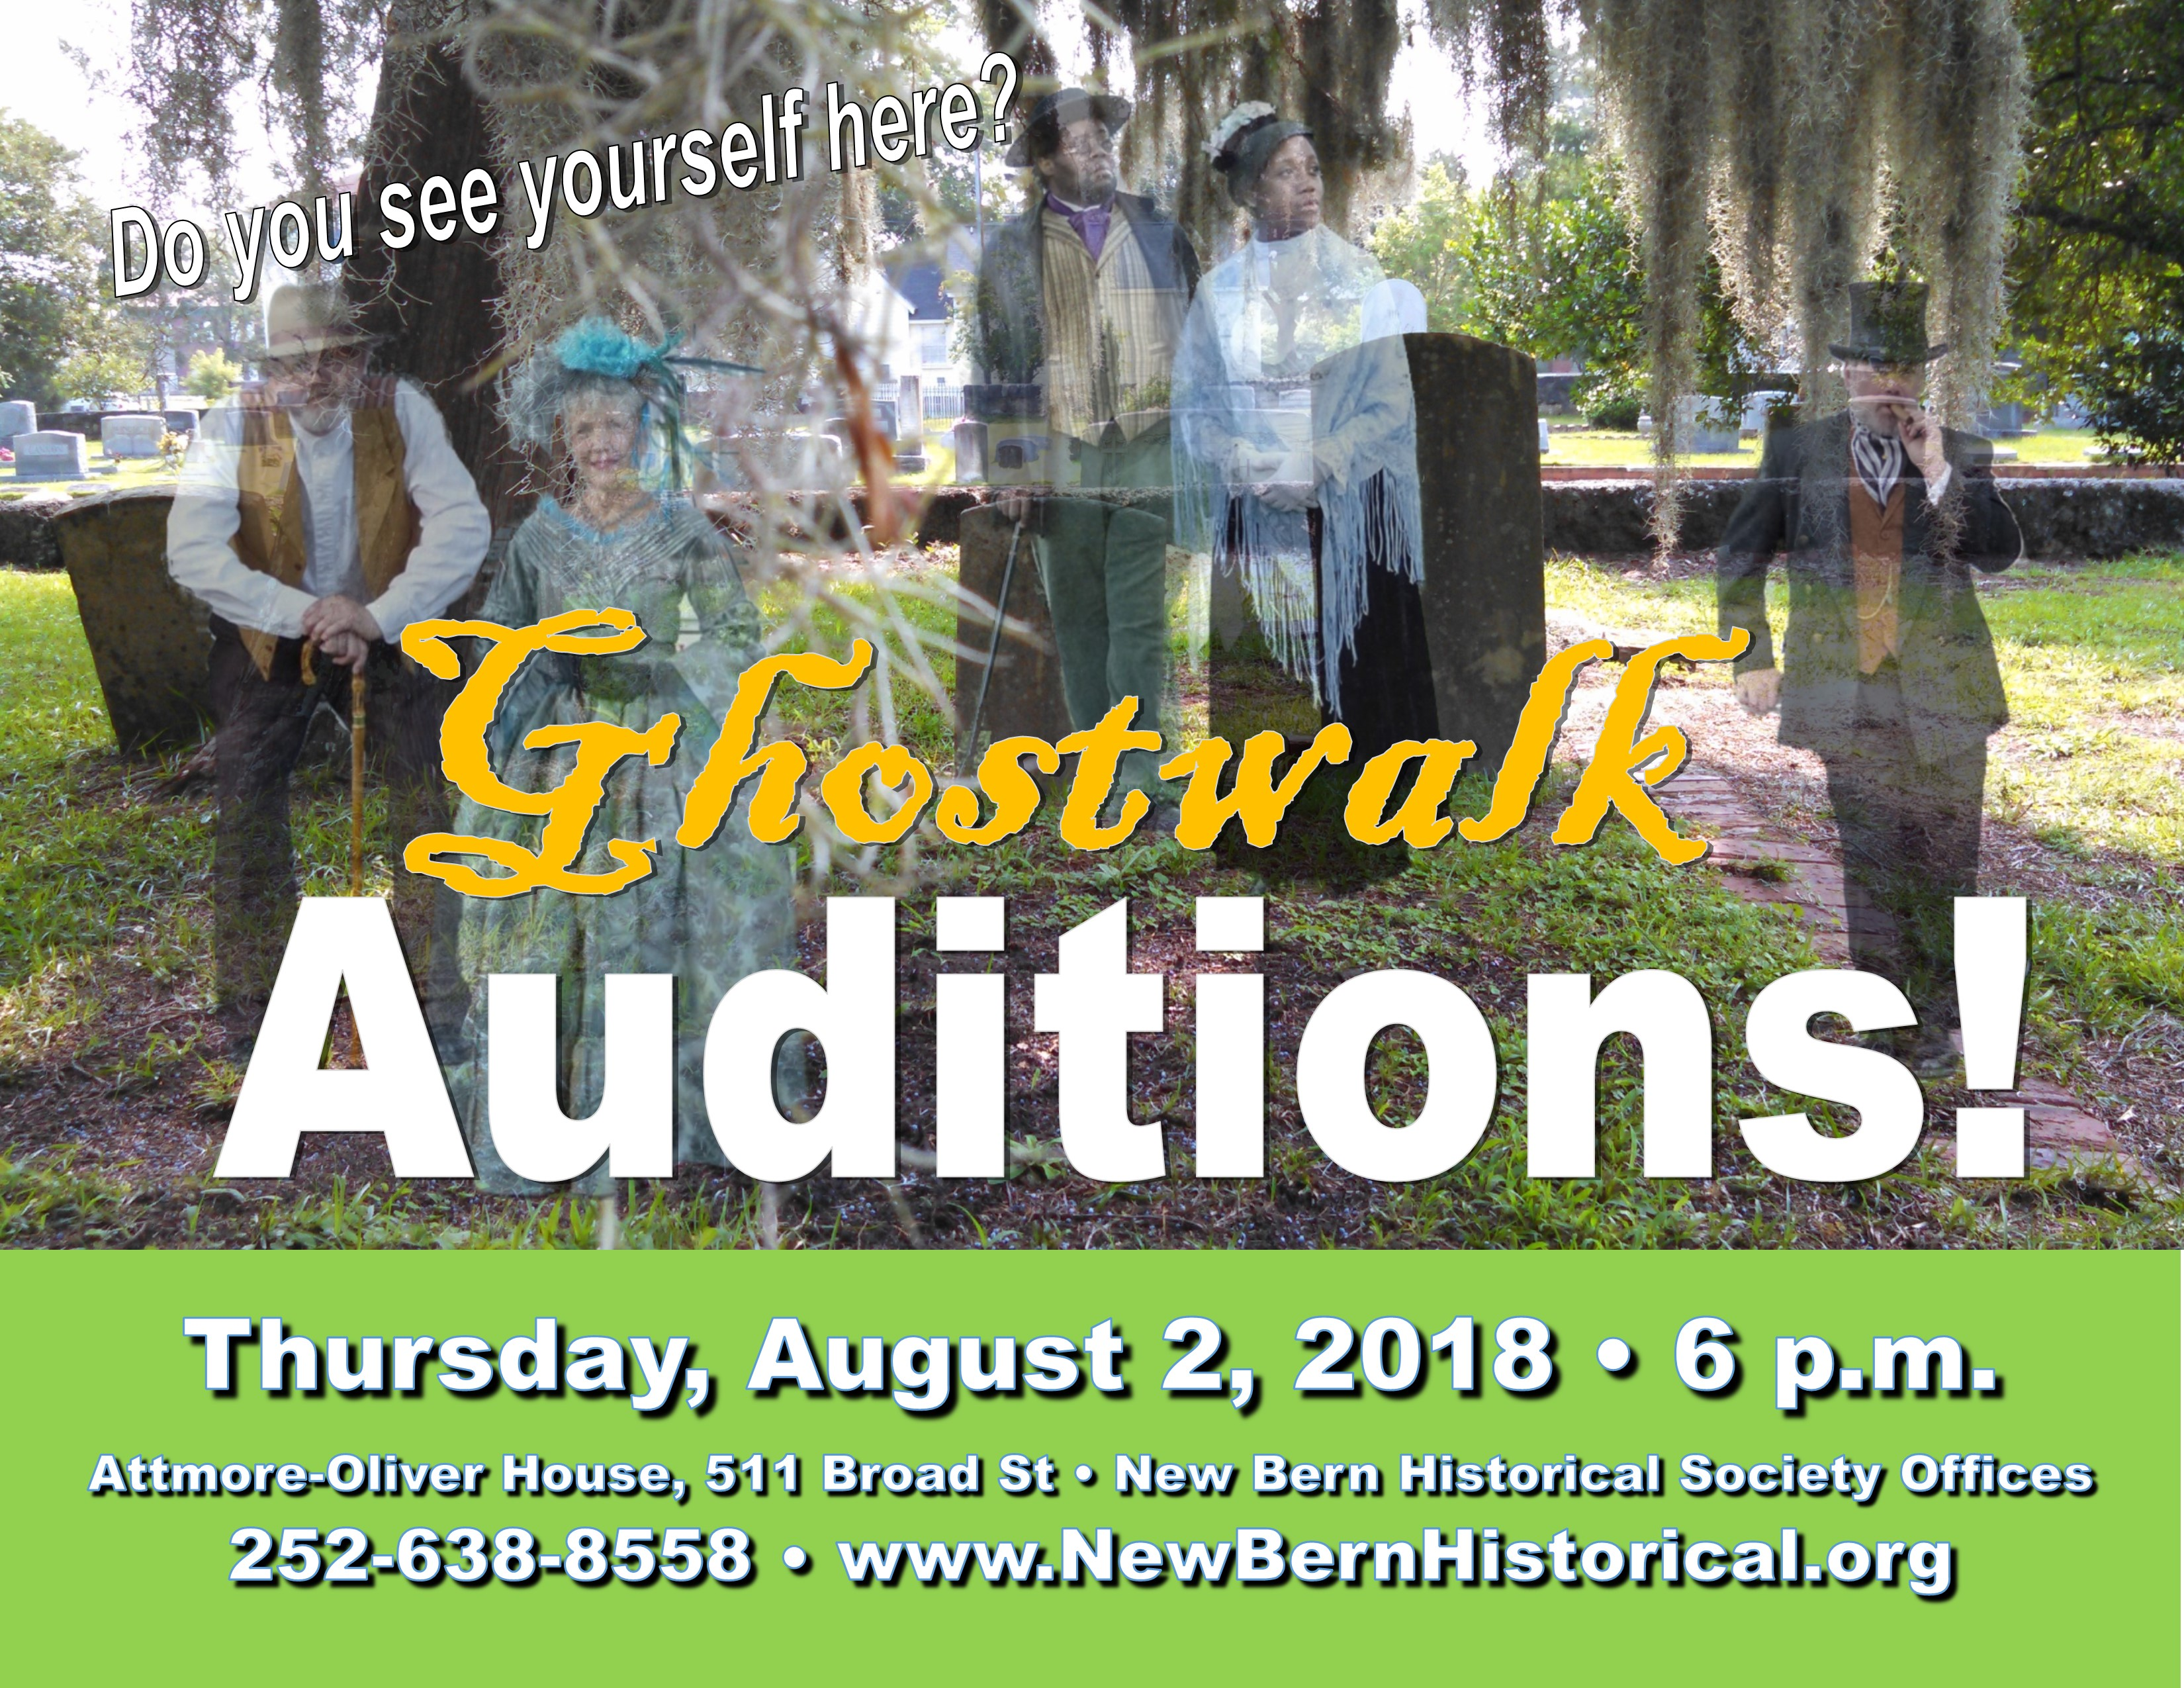 Ghost Auditions Horizontal